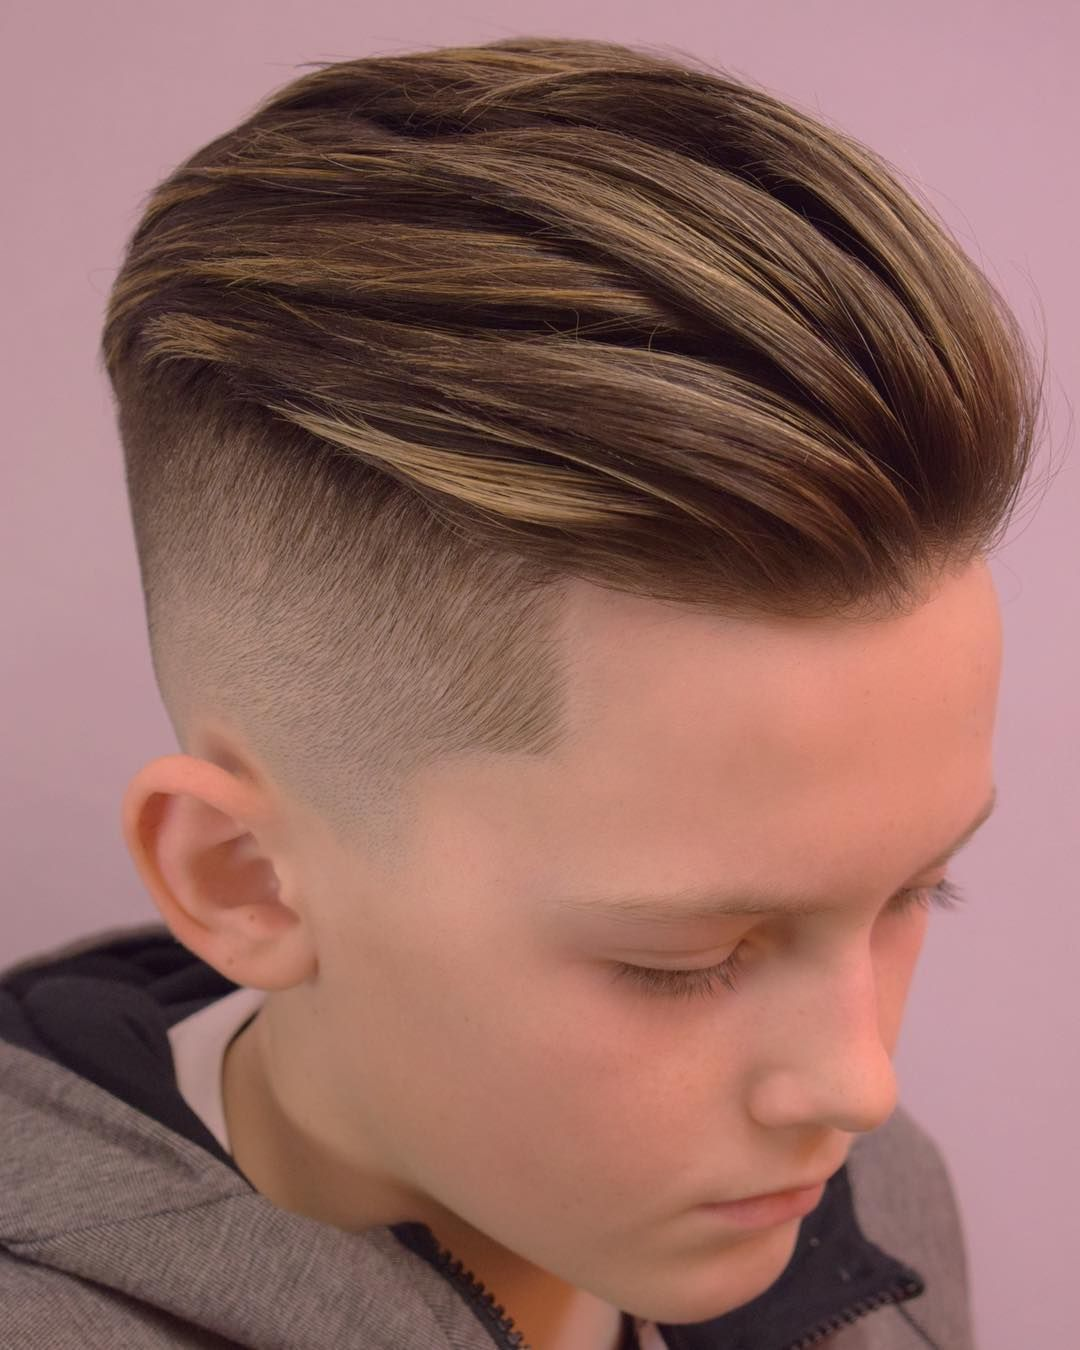 Hairstyles For A Boy Undercuts Hairstyles Boys Textured Hairstyles Haircuts Boy